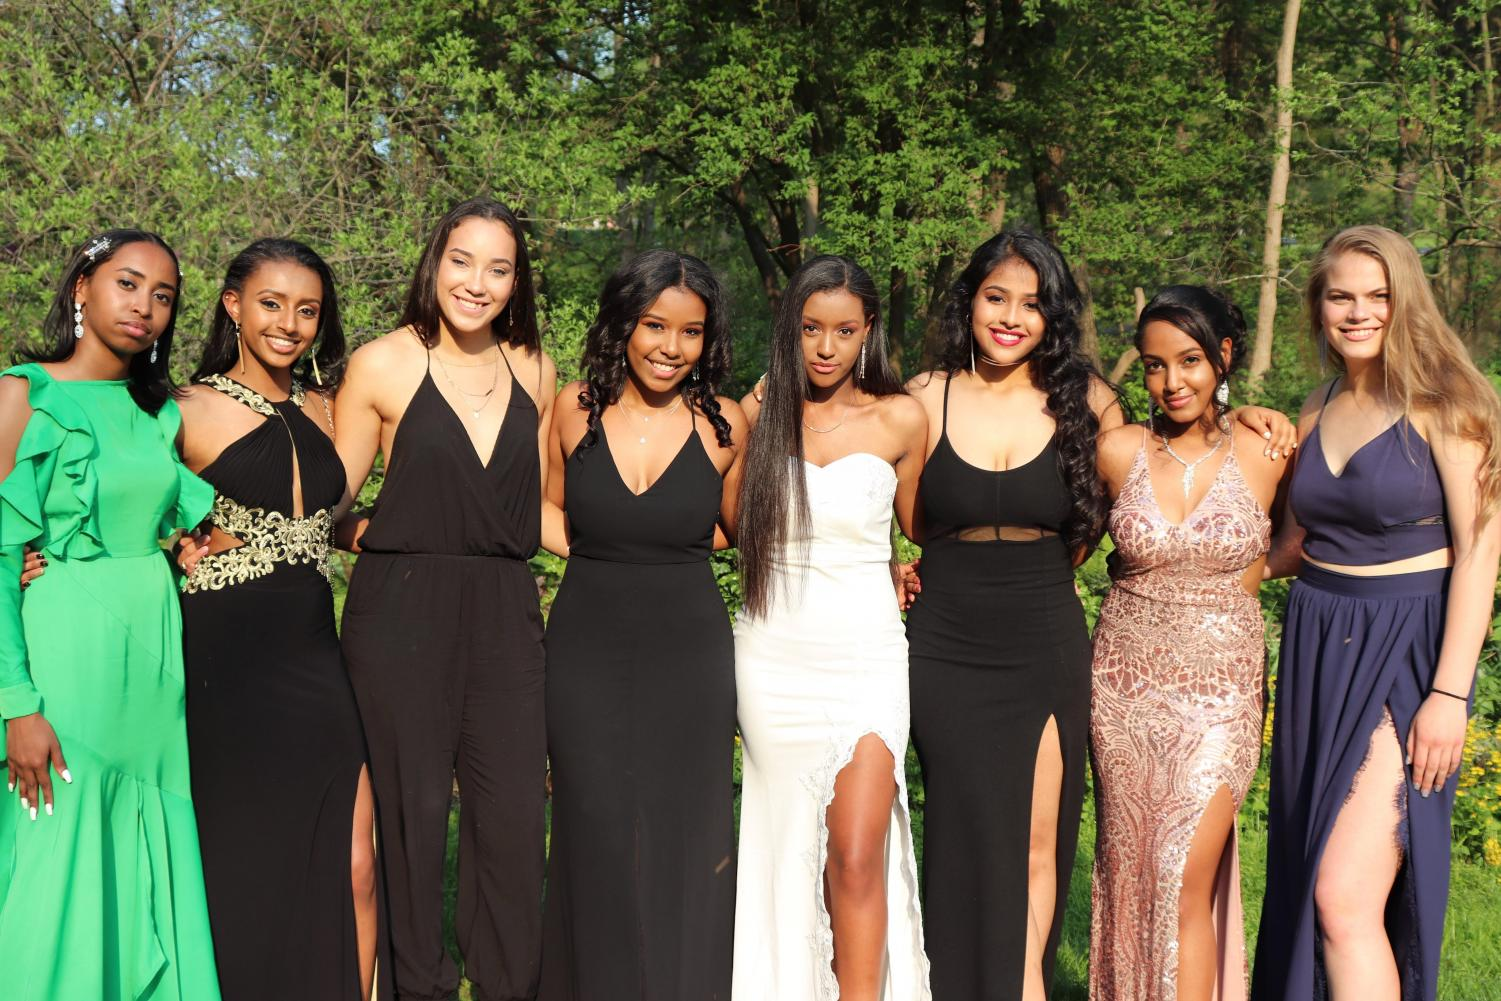 A group of prom attendees pose for a picture prior to the dance.